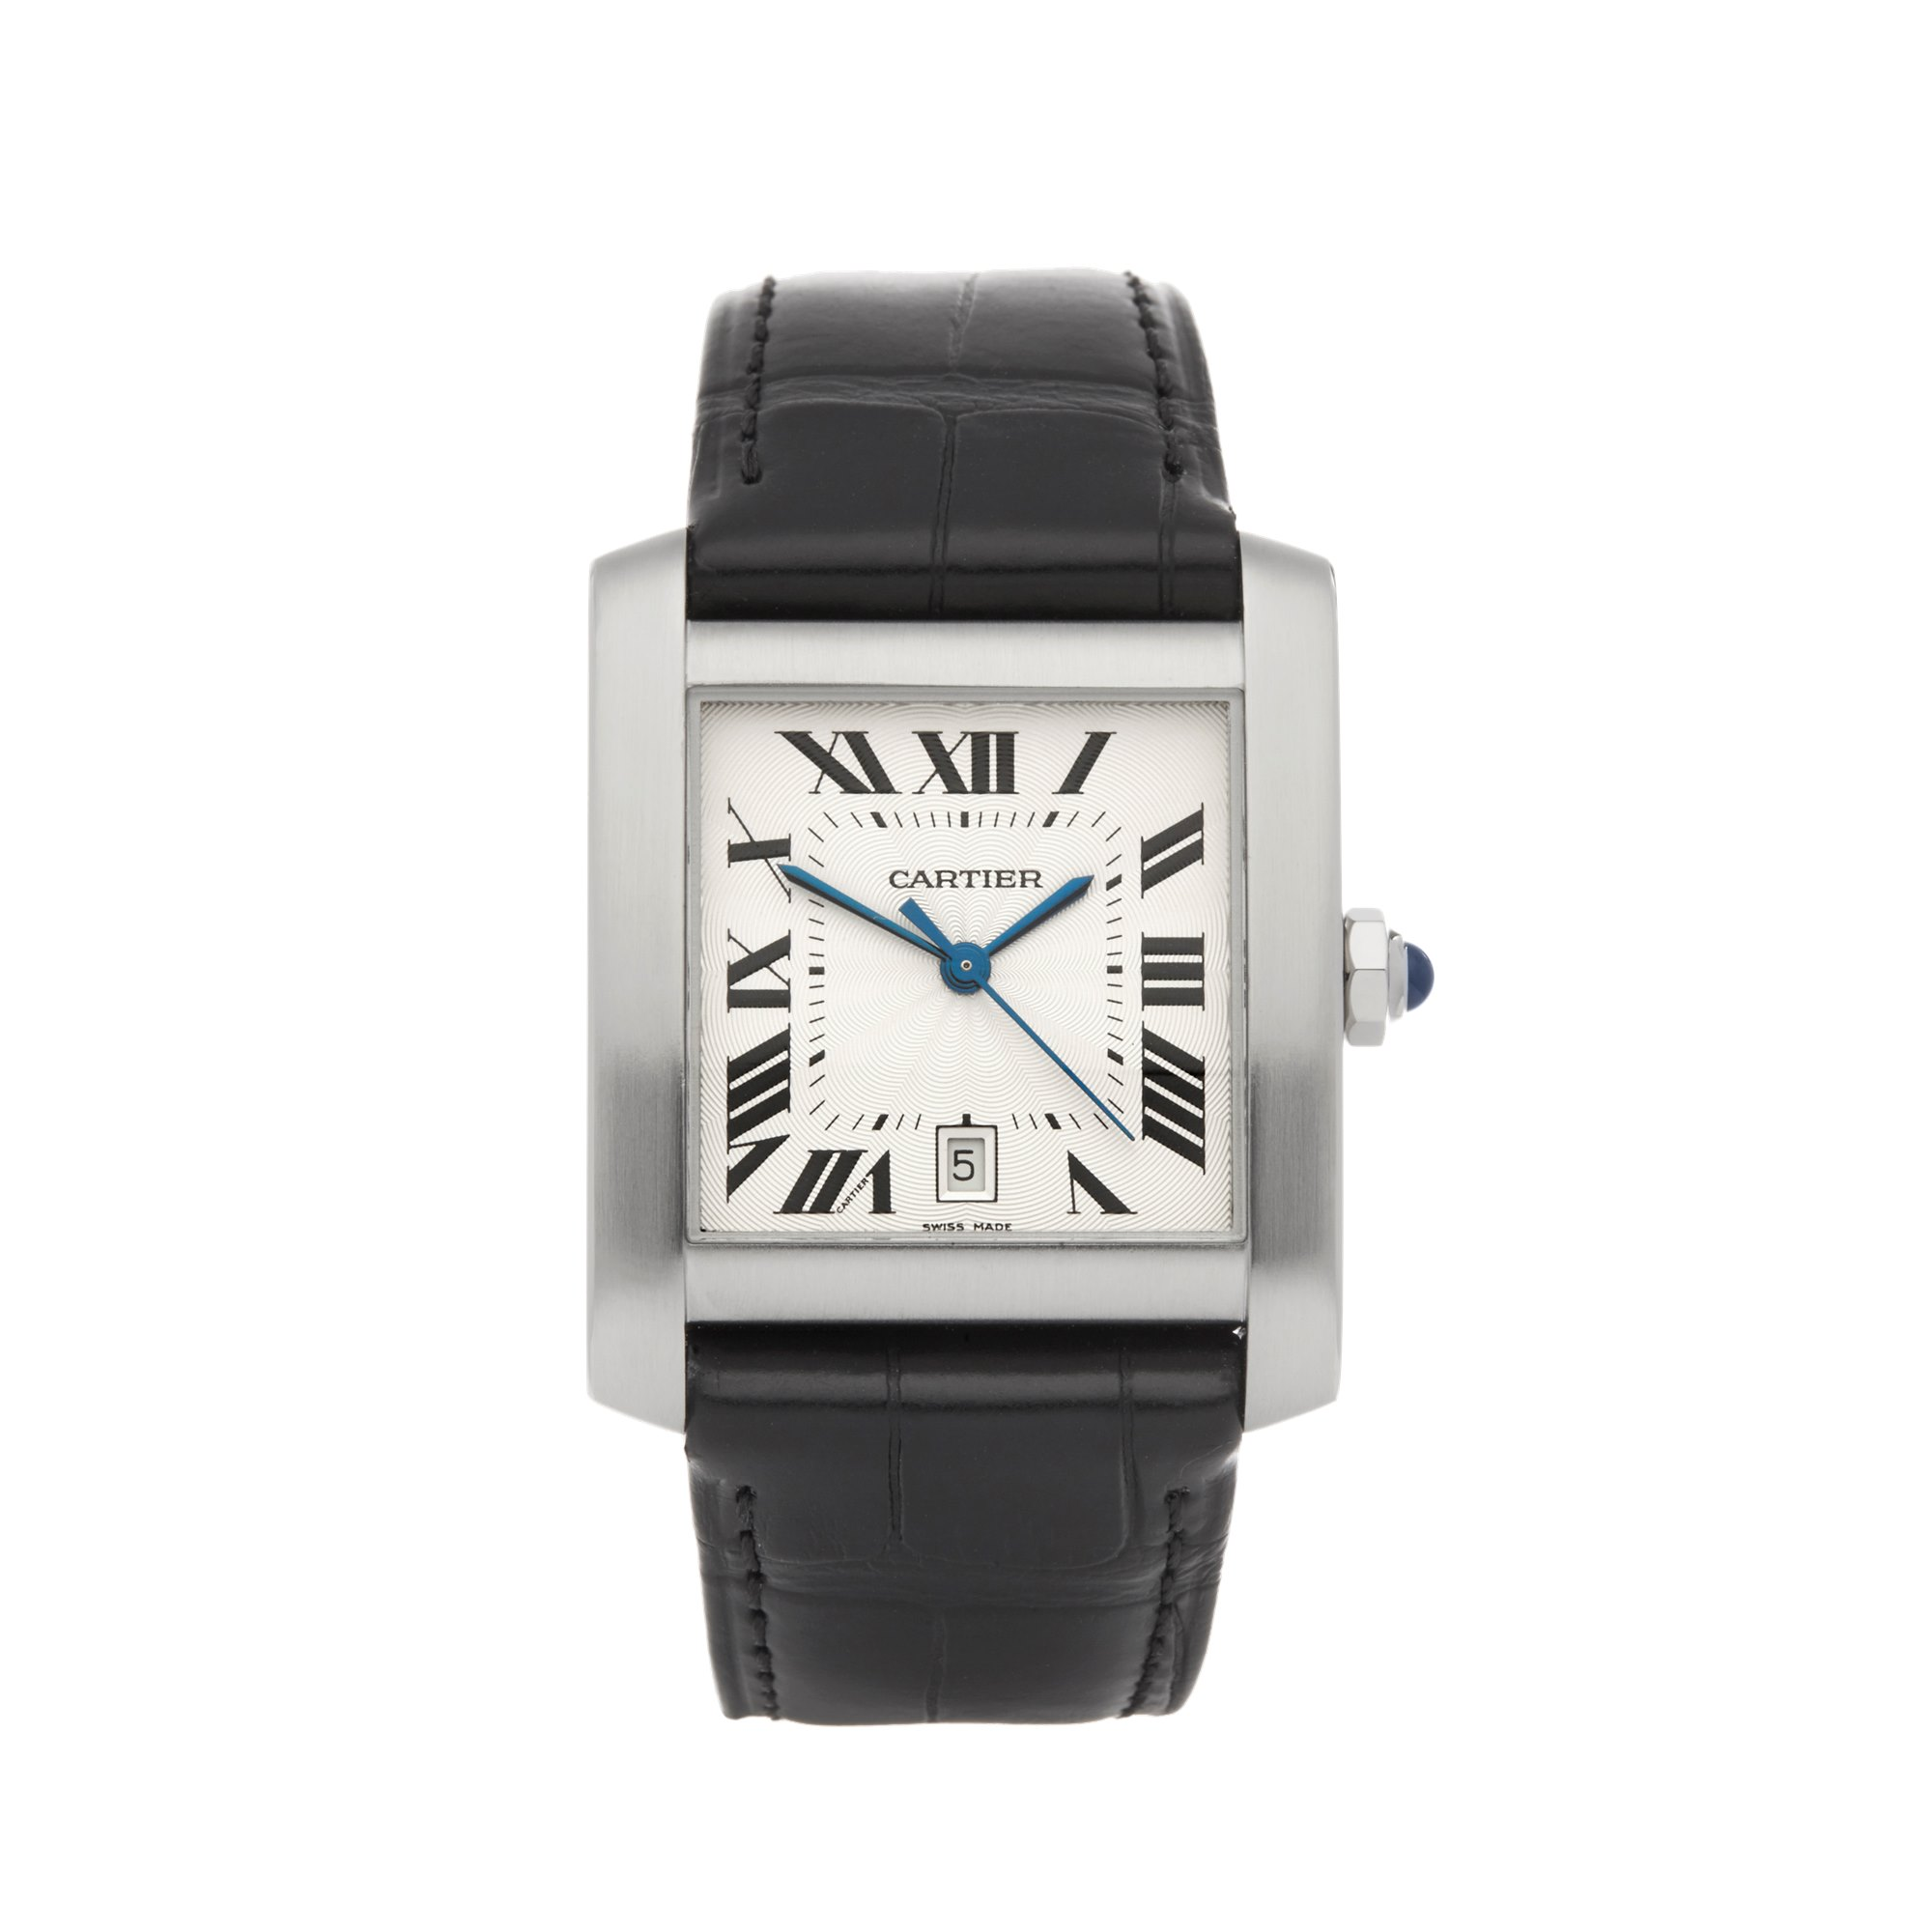 Cartier Tank Francaise Stainless Steel 2564 or W5101755